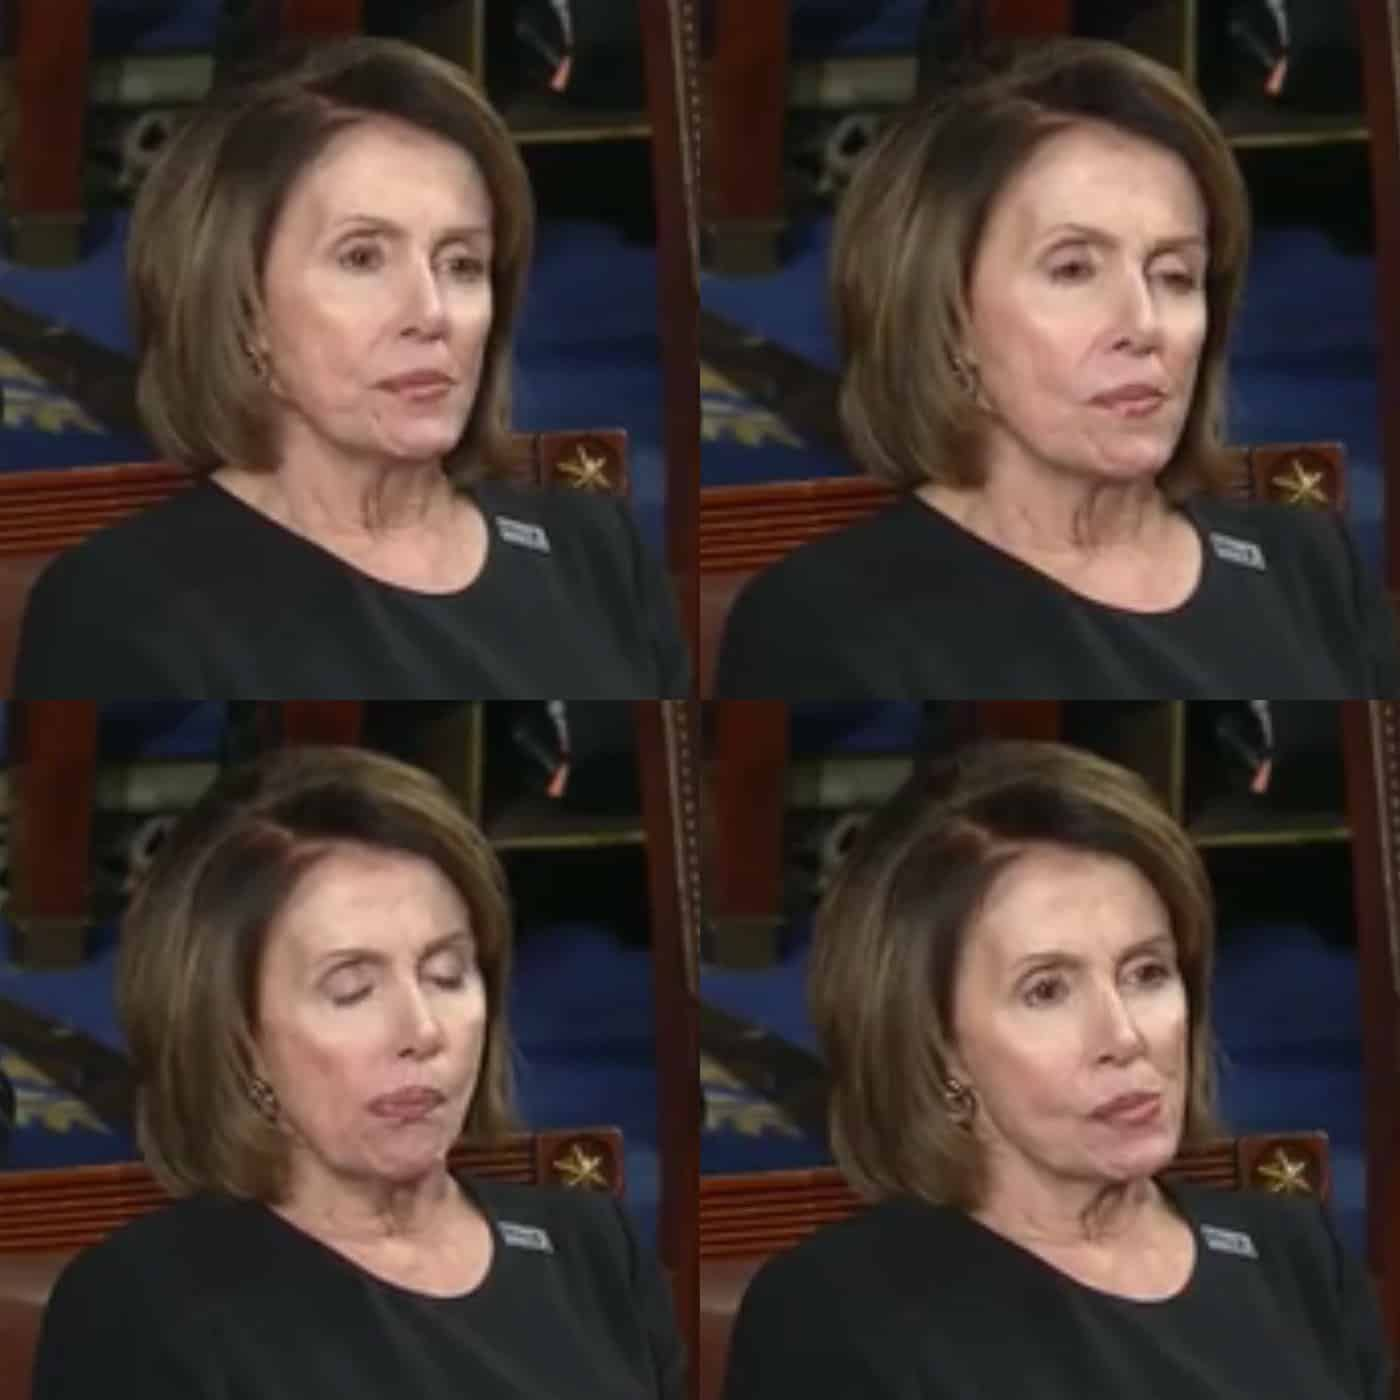 Nancy Pelosi - Democrats Incredulous at Donald Trump